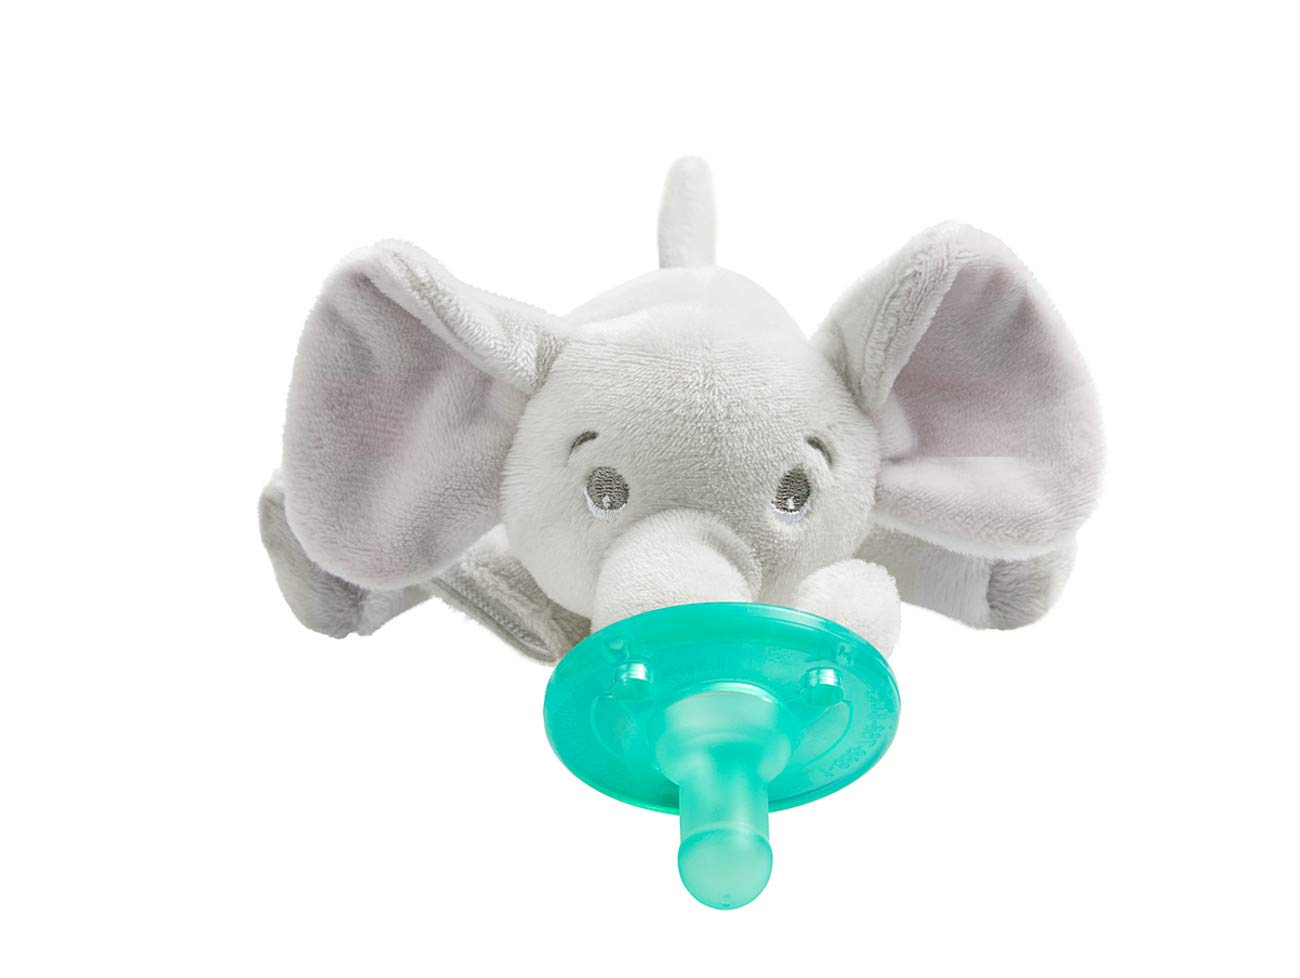 Philips Avent Soothie Snuggle Pacifier Holder with Detachable Pacifier, Elephant, 0m+